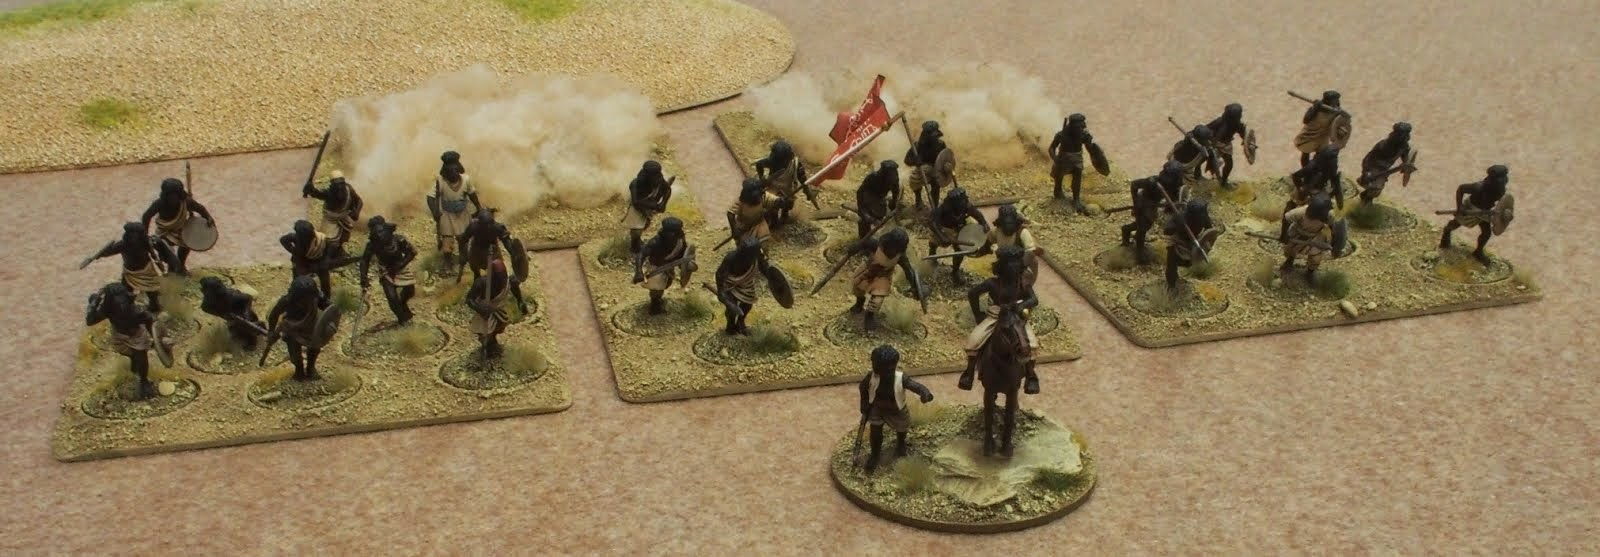 military resume examples infantry%0A     to bring firepower to bear  the British form a line with speed and  precision  The guns sit centrally  the line anchored by the Bombay infantry  and KRRC